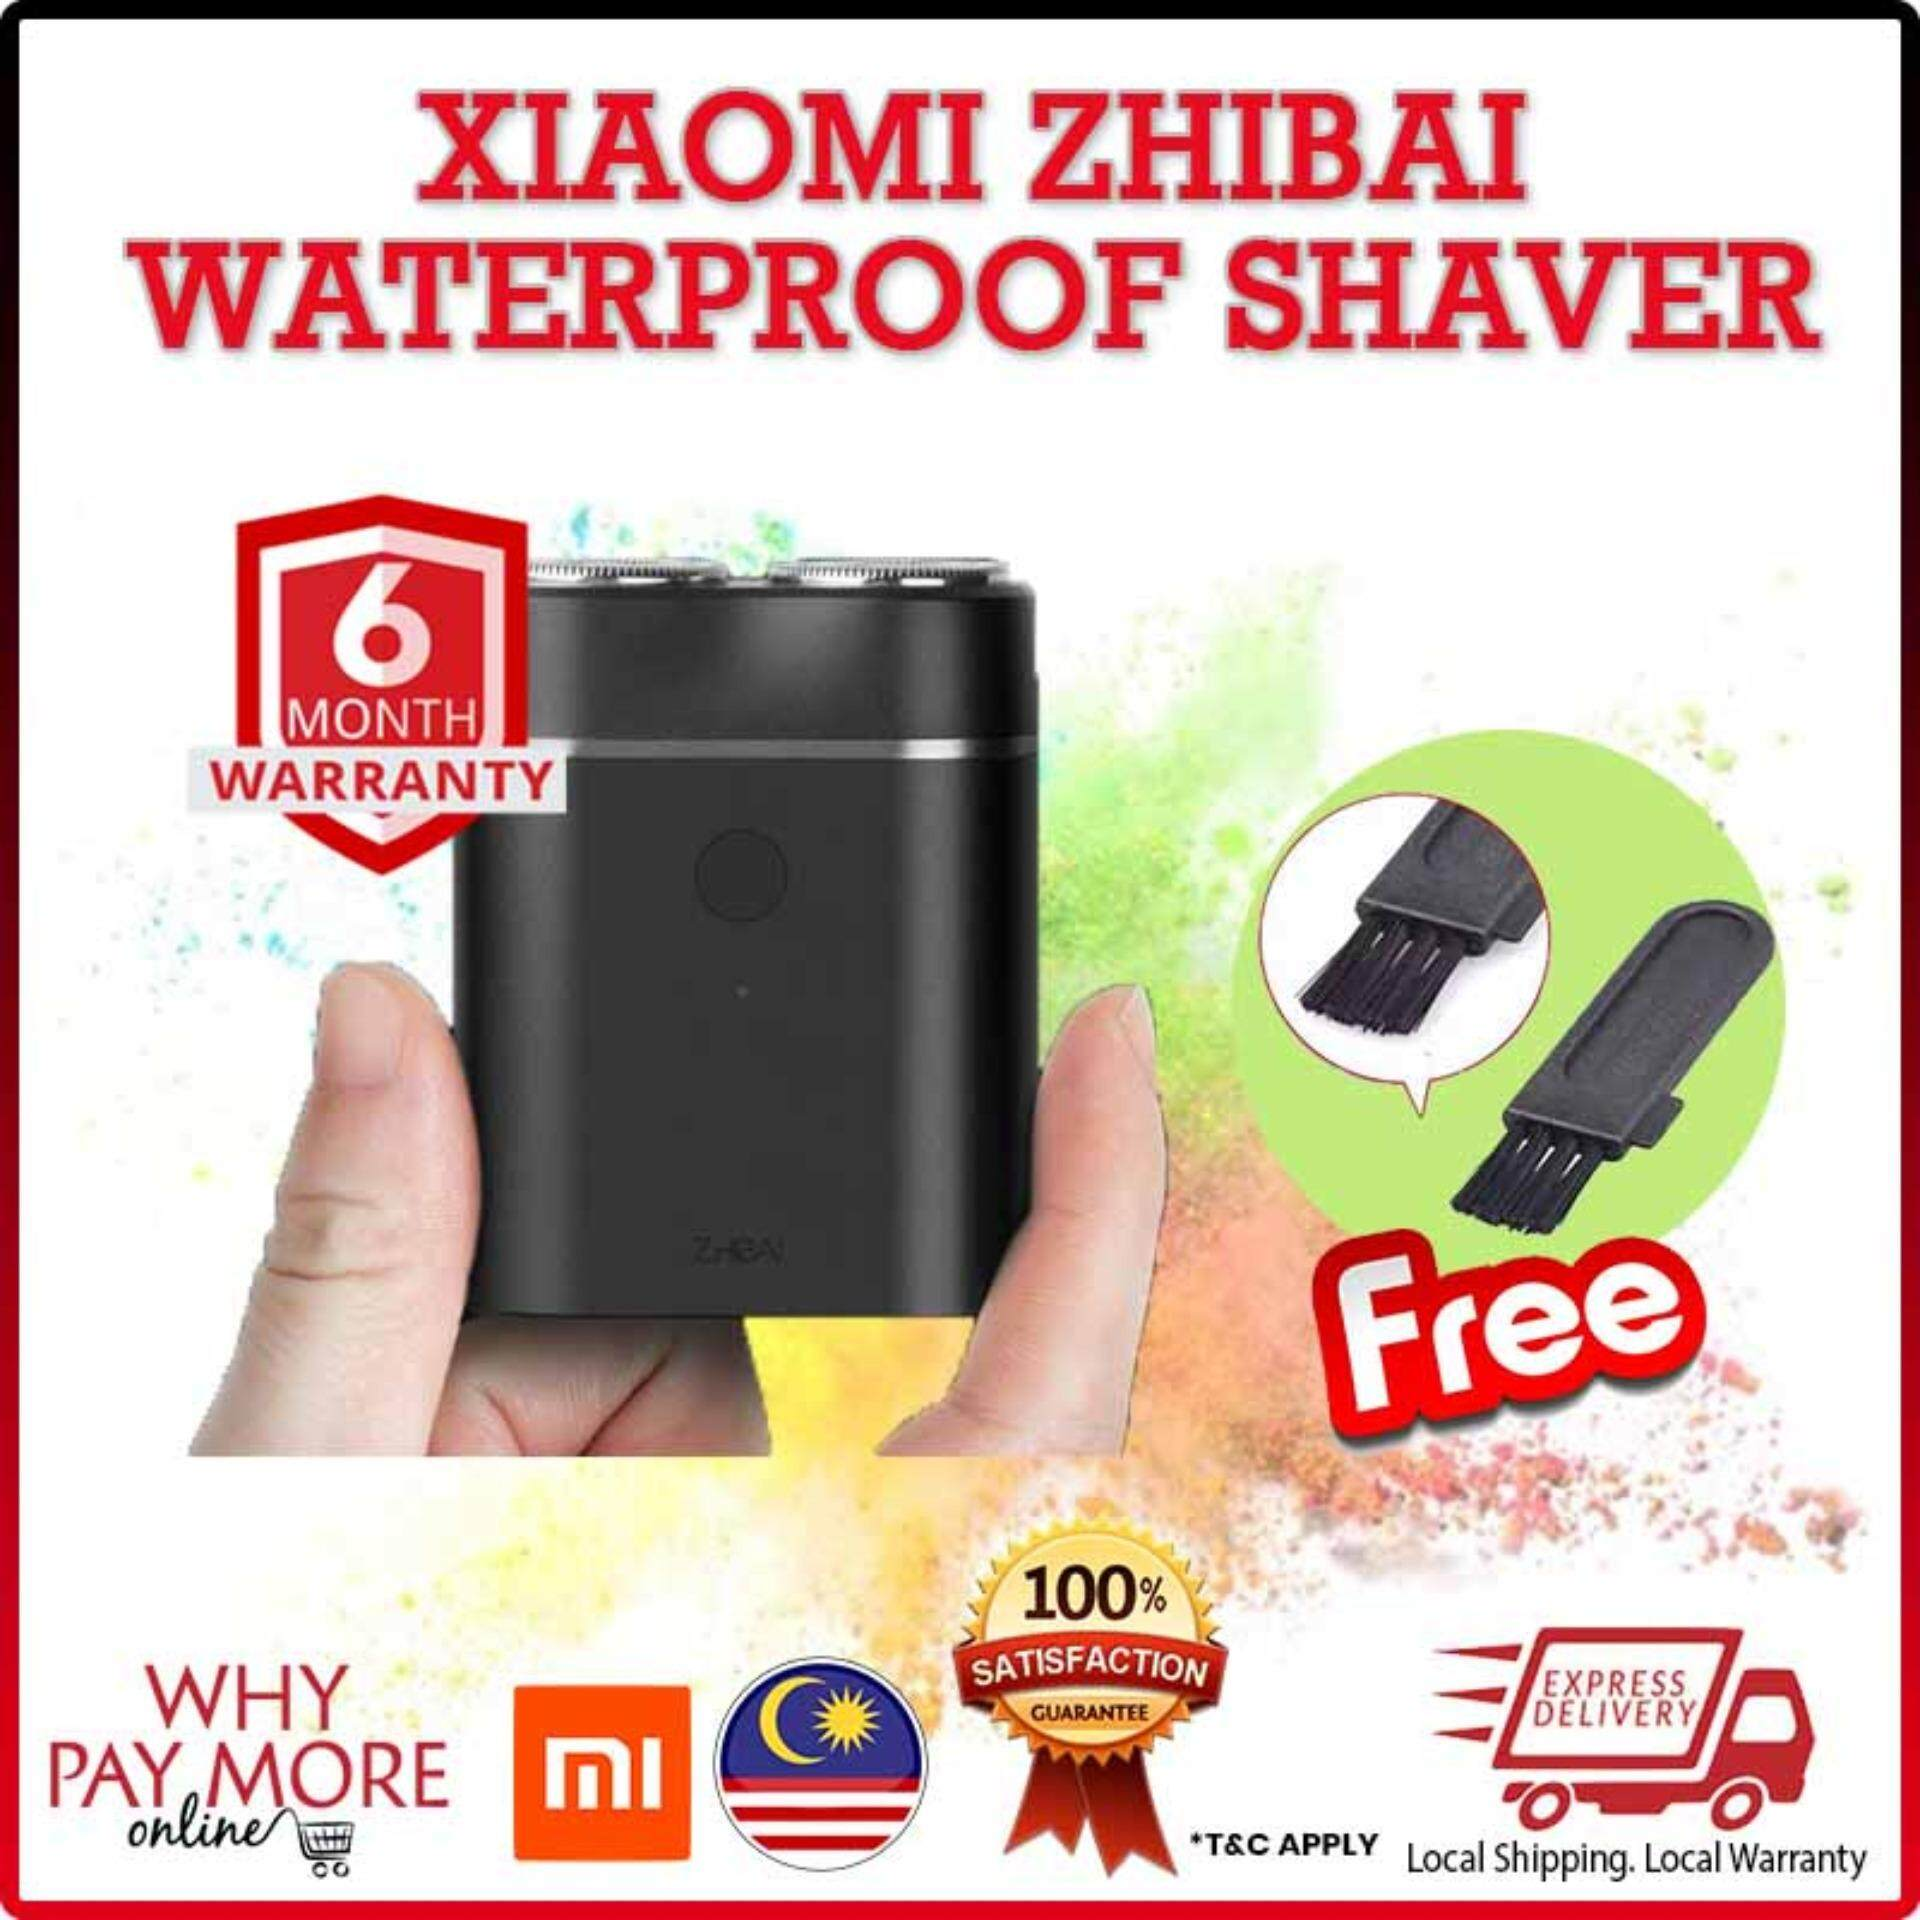 [NEW YEAR FREE GIFT][FREE SHIPPING]Original Xiaomi Zhibai Mijia Electric Portable Smart Razor IPX7 Waterproof Mi Dual Head Men Shaver Zhi Bai